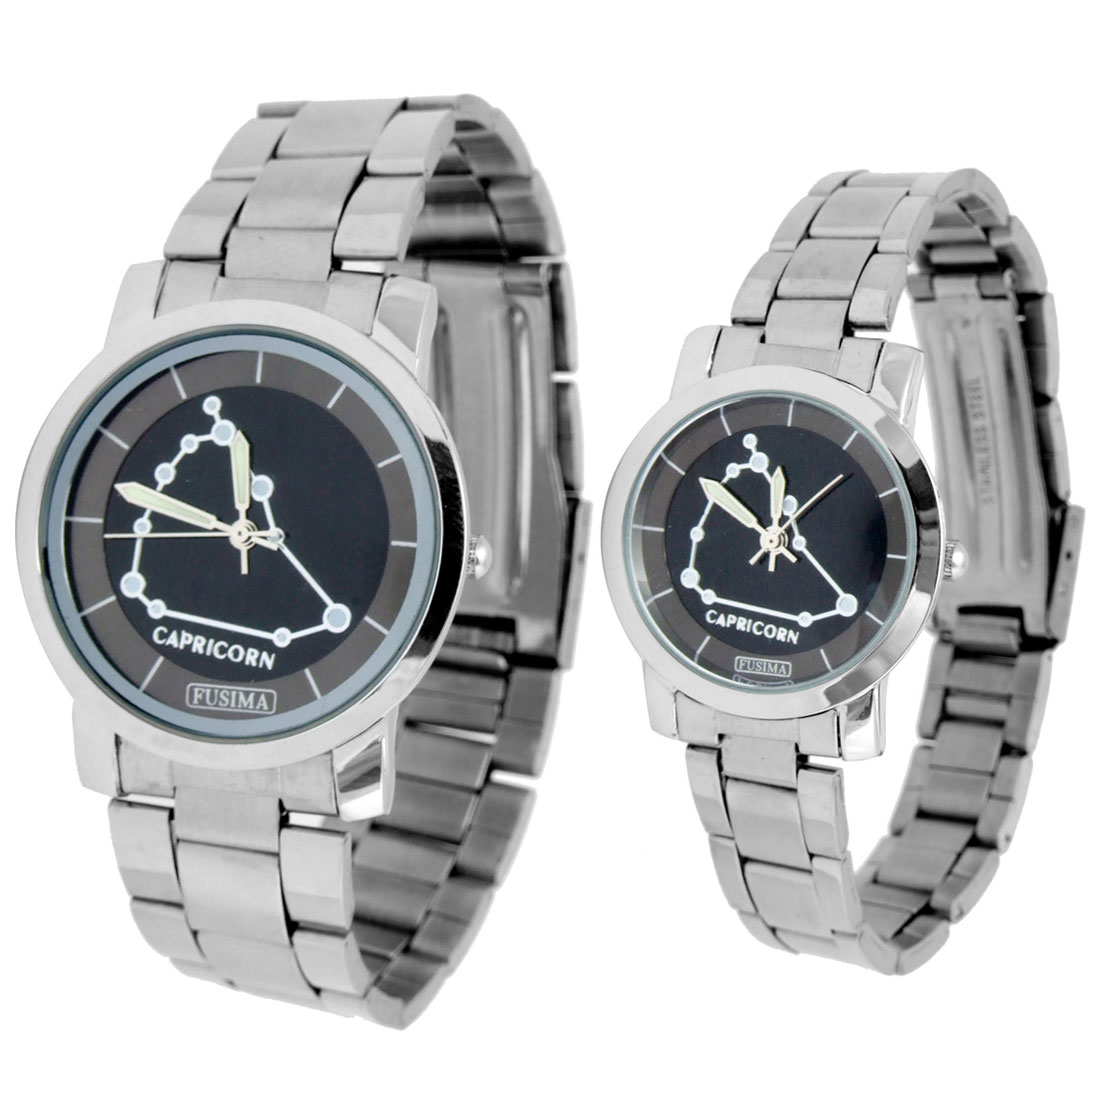 One Pair of Watches for Man's & Lady's Fere Wrist Watch